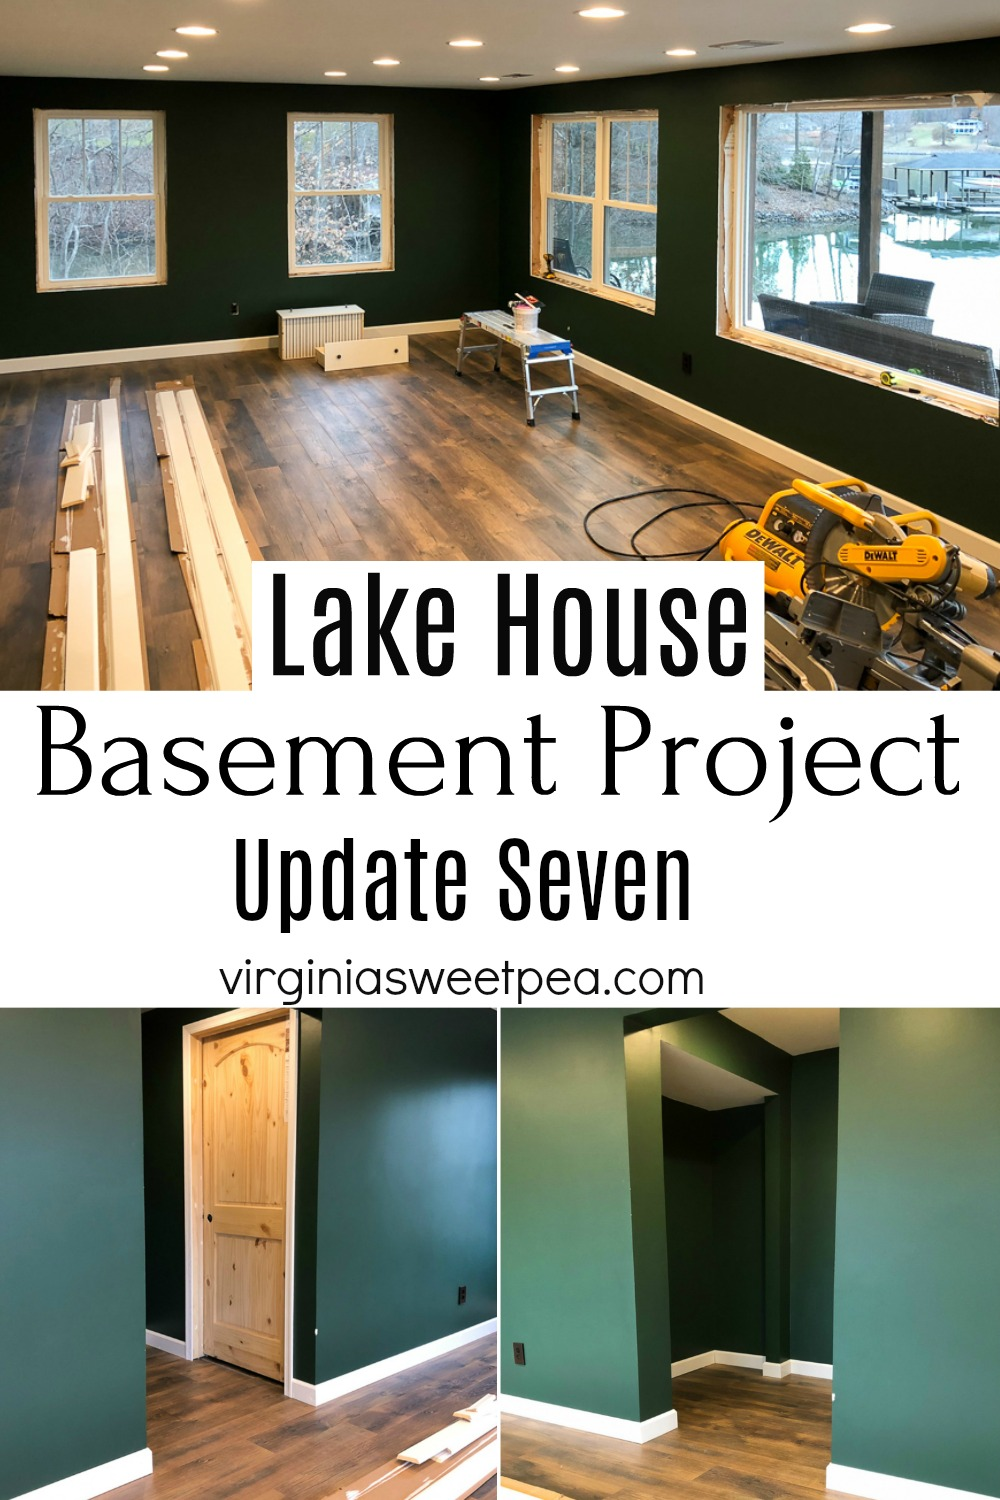 Lake House Basement Project Update Seven - Doors, moulding, and baseboards are installed. #finishingabasement #basementproject #smithmountainlake #installingdoors #installingmoulding #installingbaseboard #virginiasweetpea